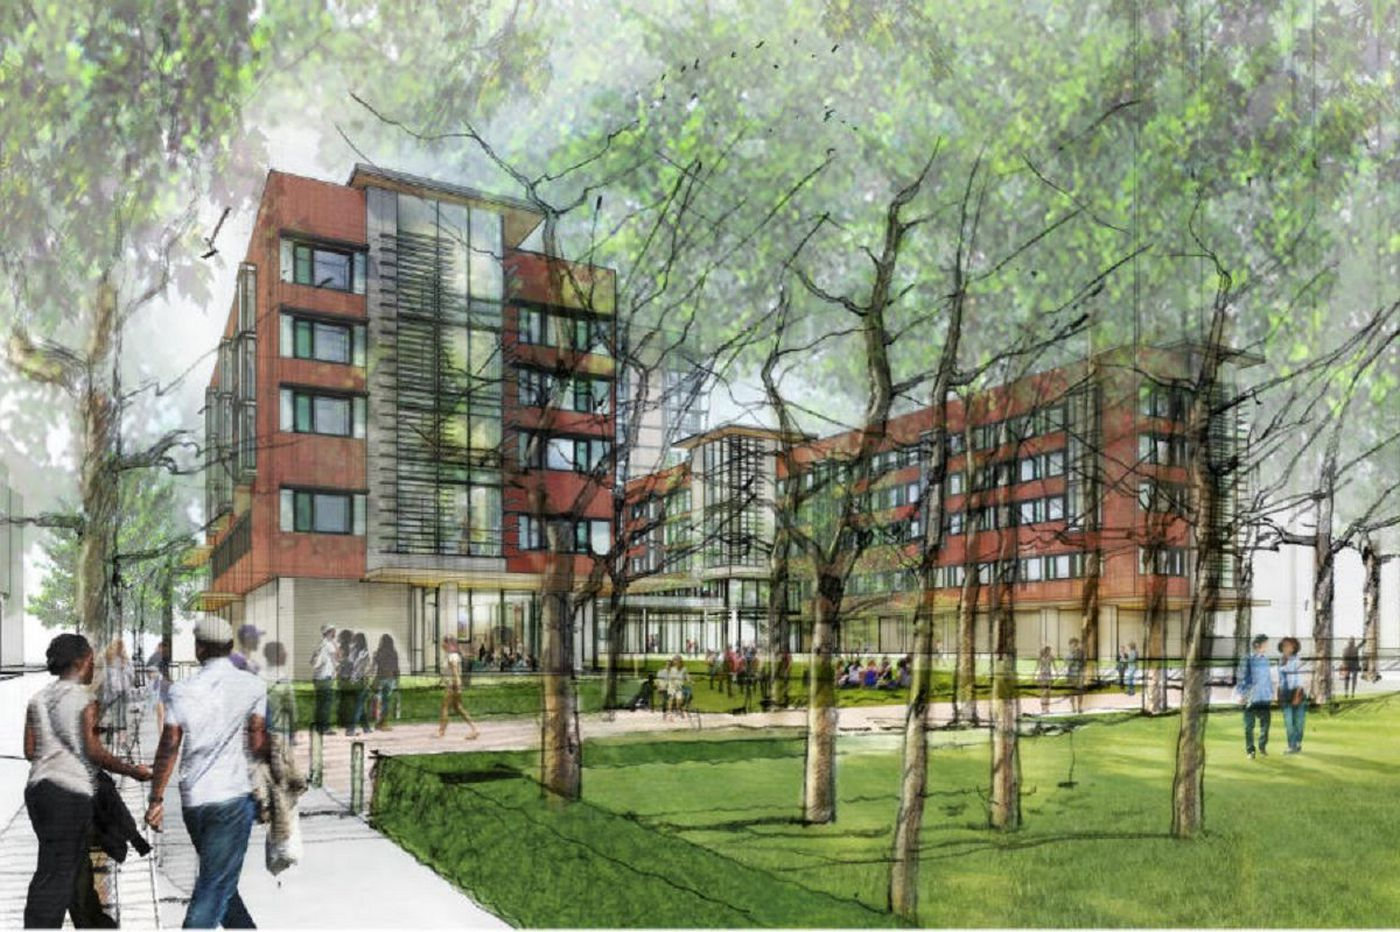 Penn to build more undergrad housing near 40th & Walnut